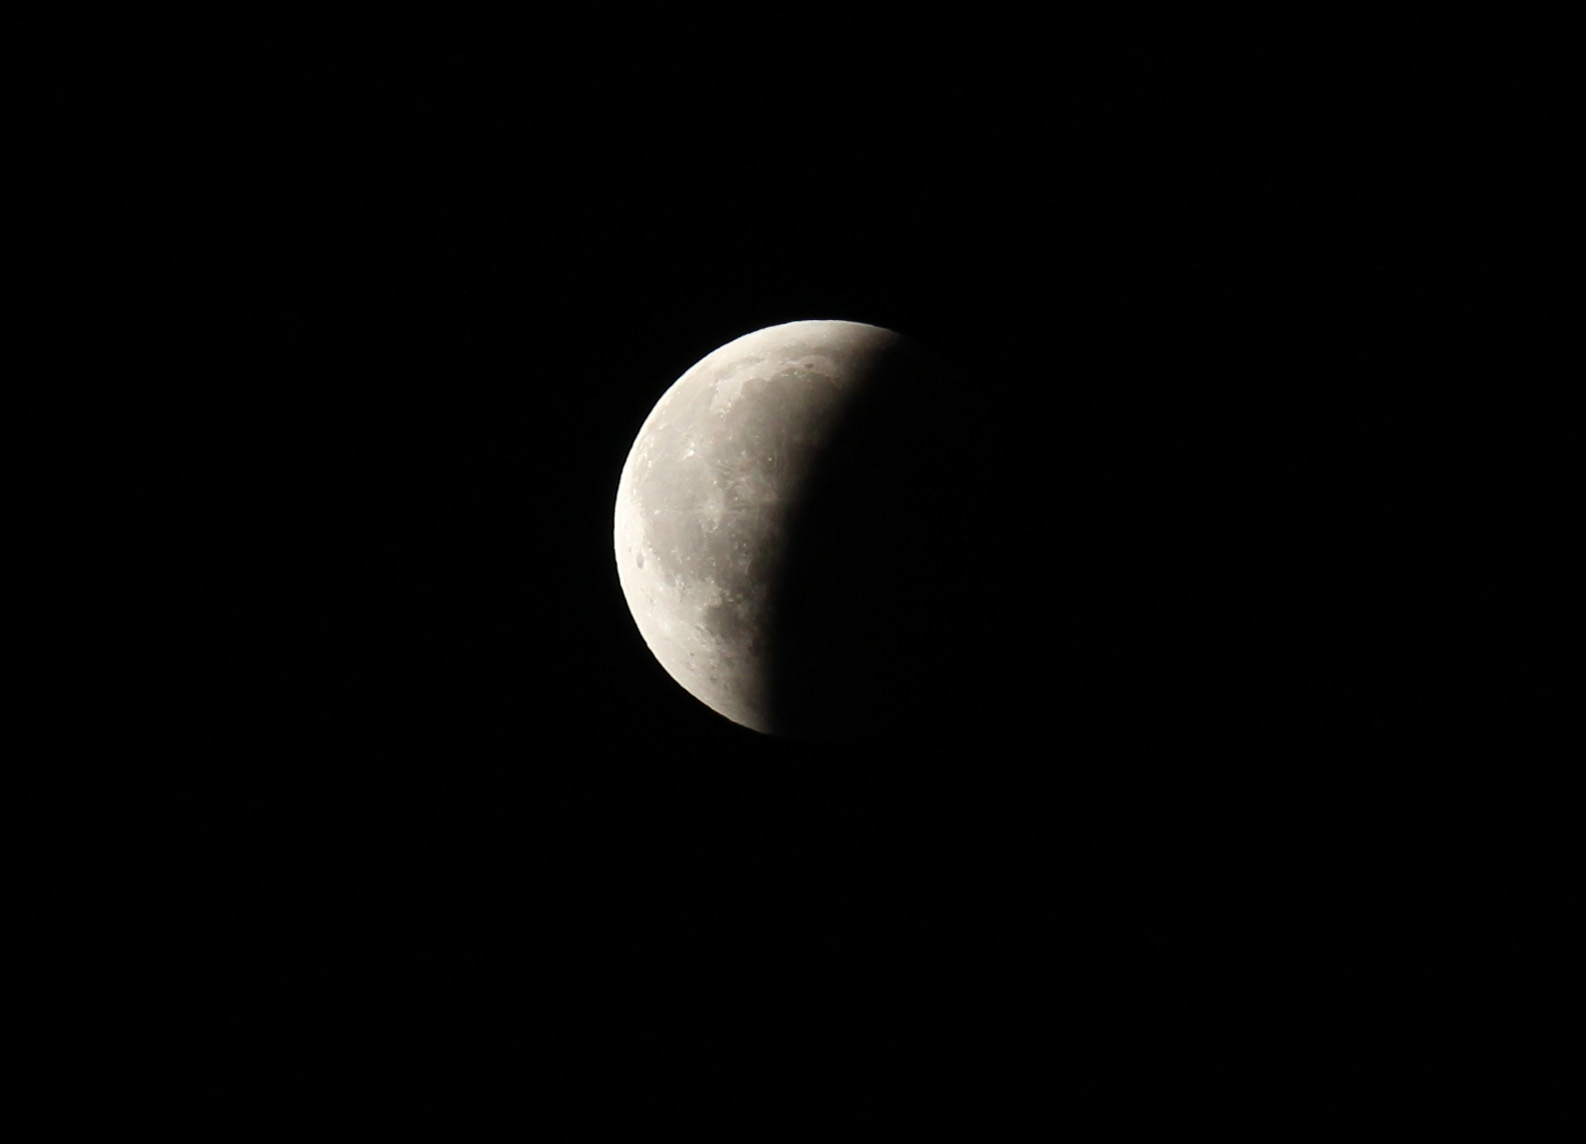 The Moon moves out of the Earth's shadow during an eclipse in 2010. Photo by Randy Attwood